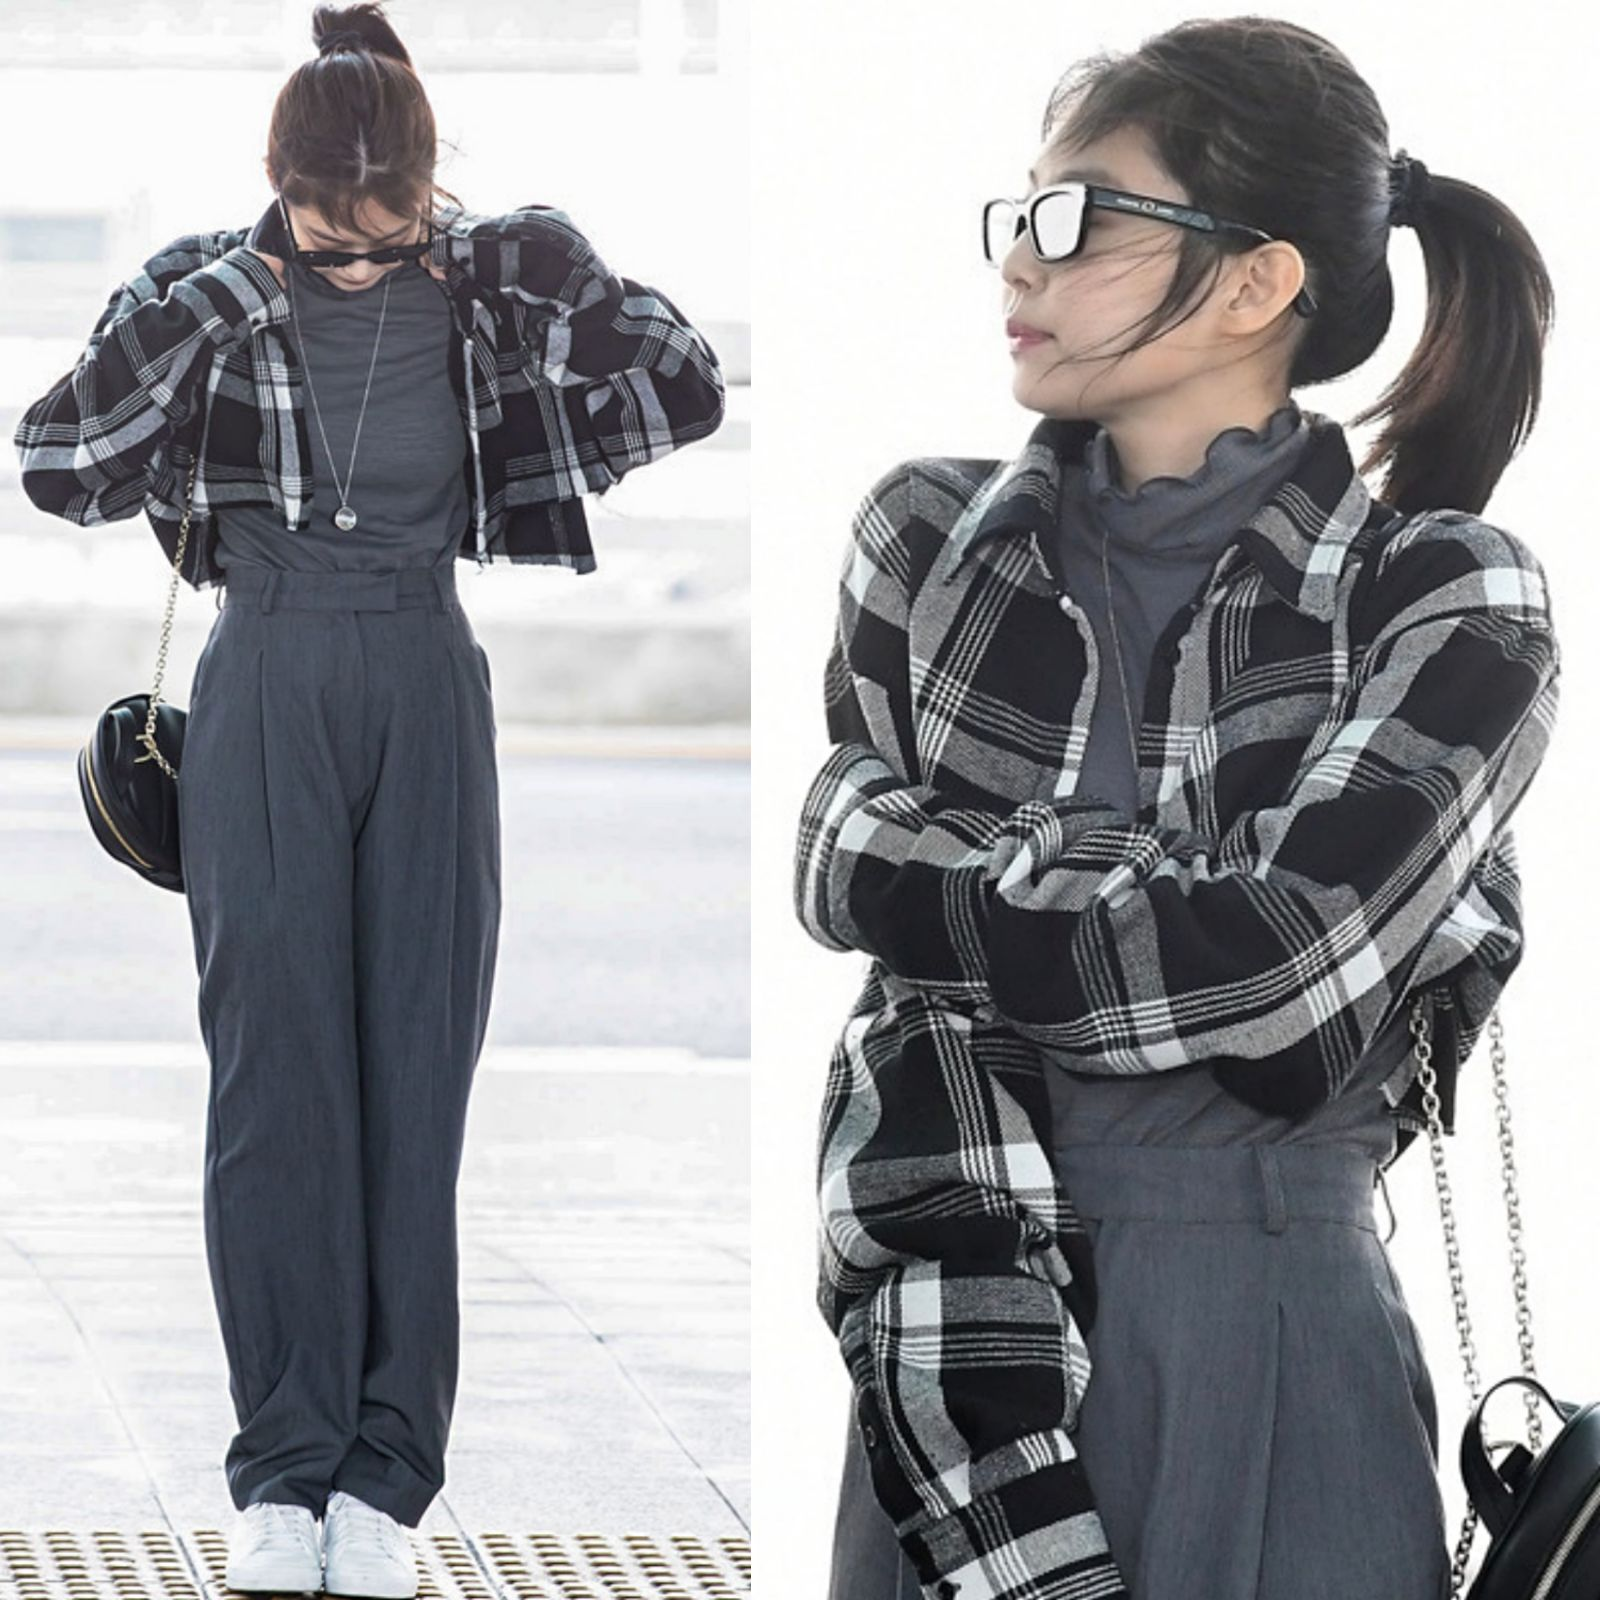 Kpop BLACKPINK JENNIE Korean Retro Plaid Lapel Short Shirt +gray Turtleneck Long Sleeved T Shirt Loose Pants Trousers Women Set